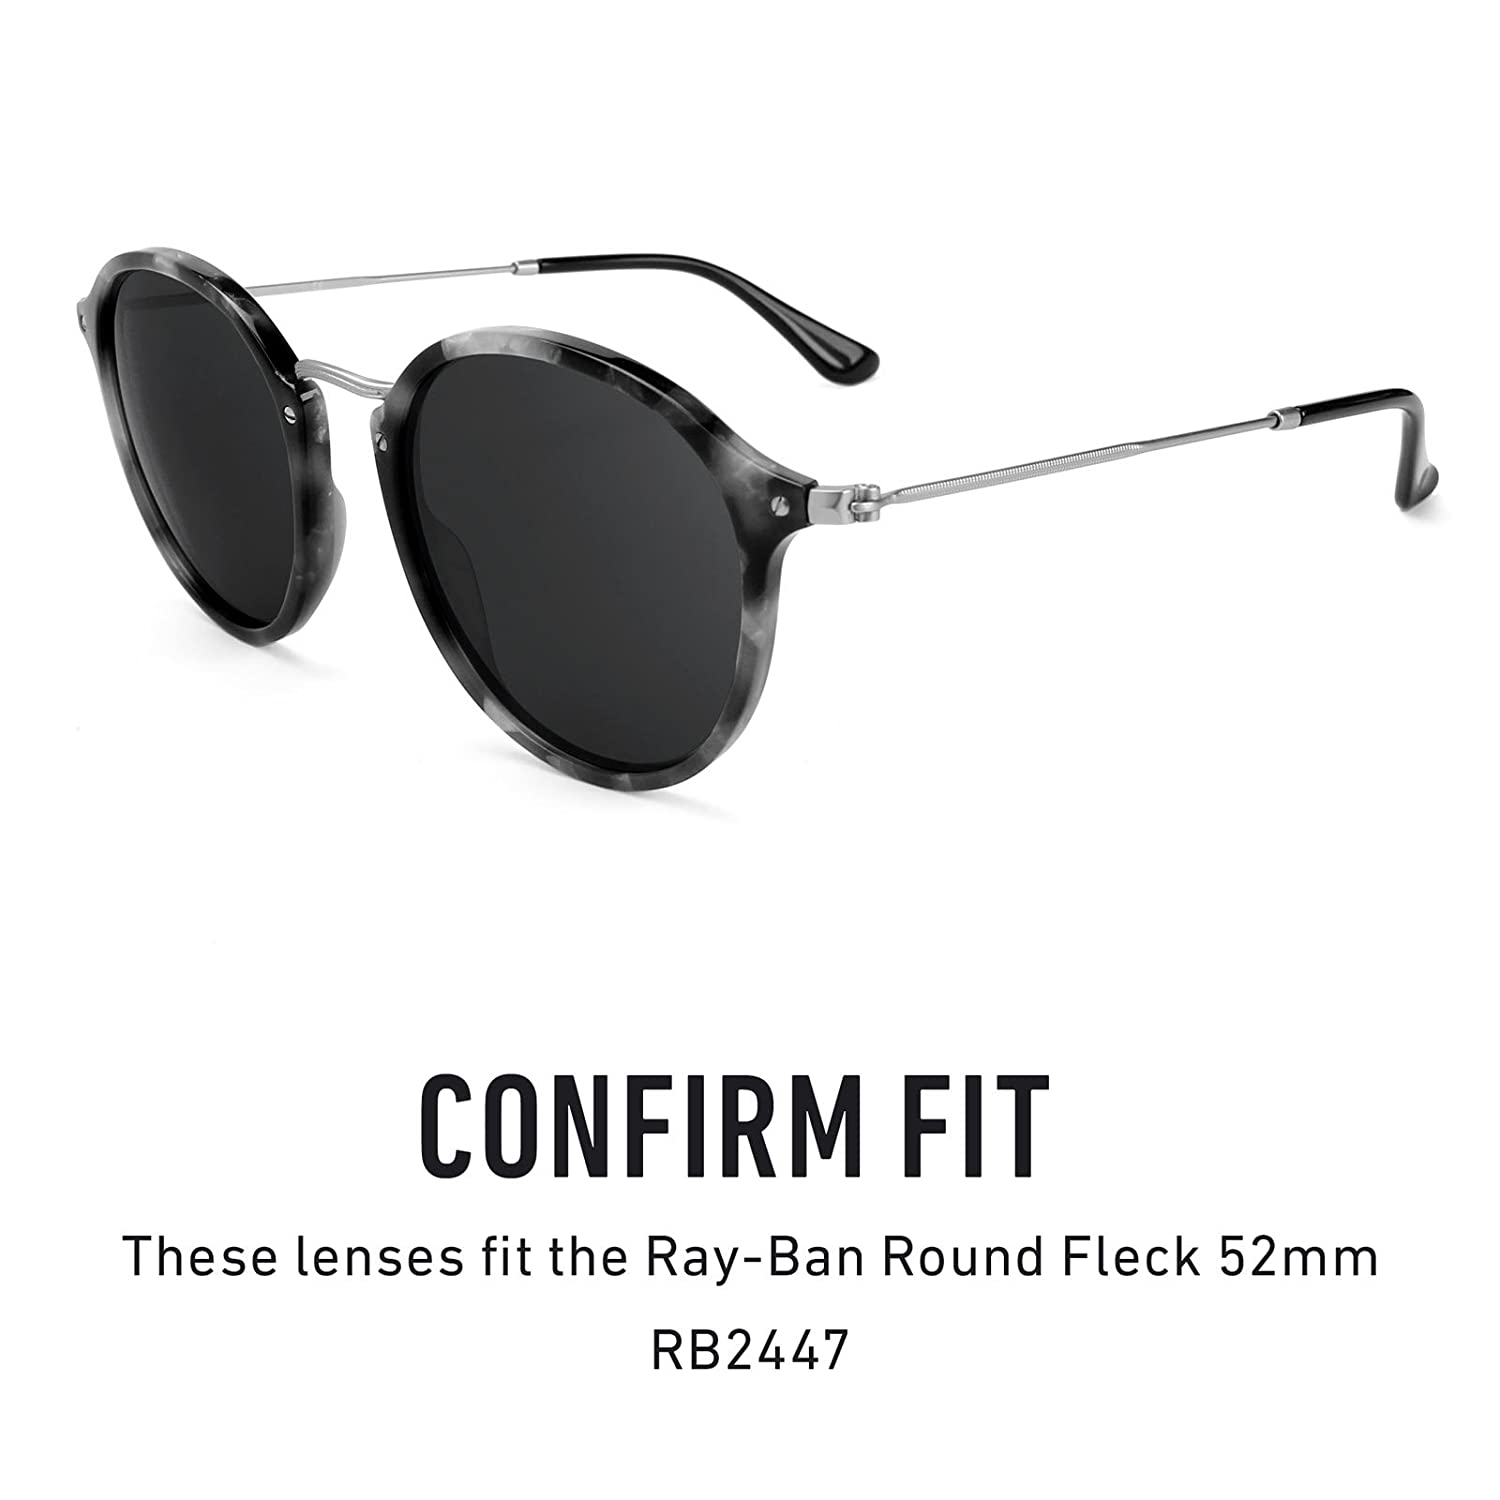 5ac1ea7d9f Amazon.com  Revant Polarized Replacement Lenses for Ray Ban Round Fleck  52mm RB2447 Black Chrome MirrorShield  Sports   Outdoors